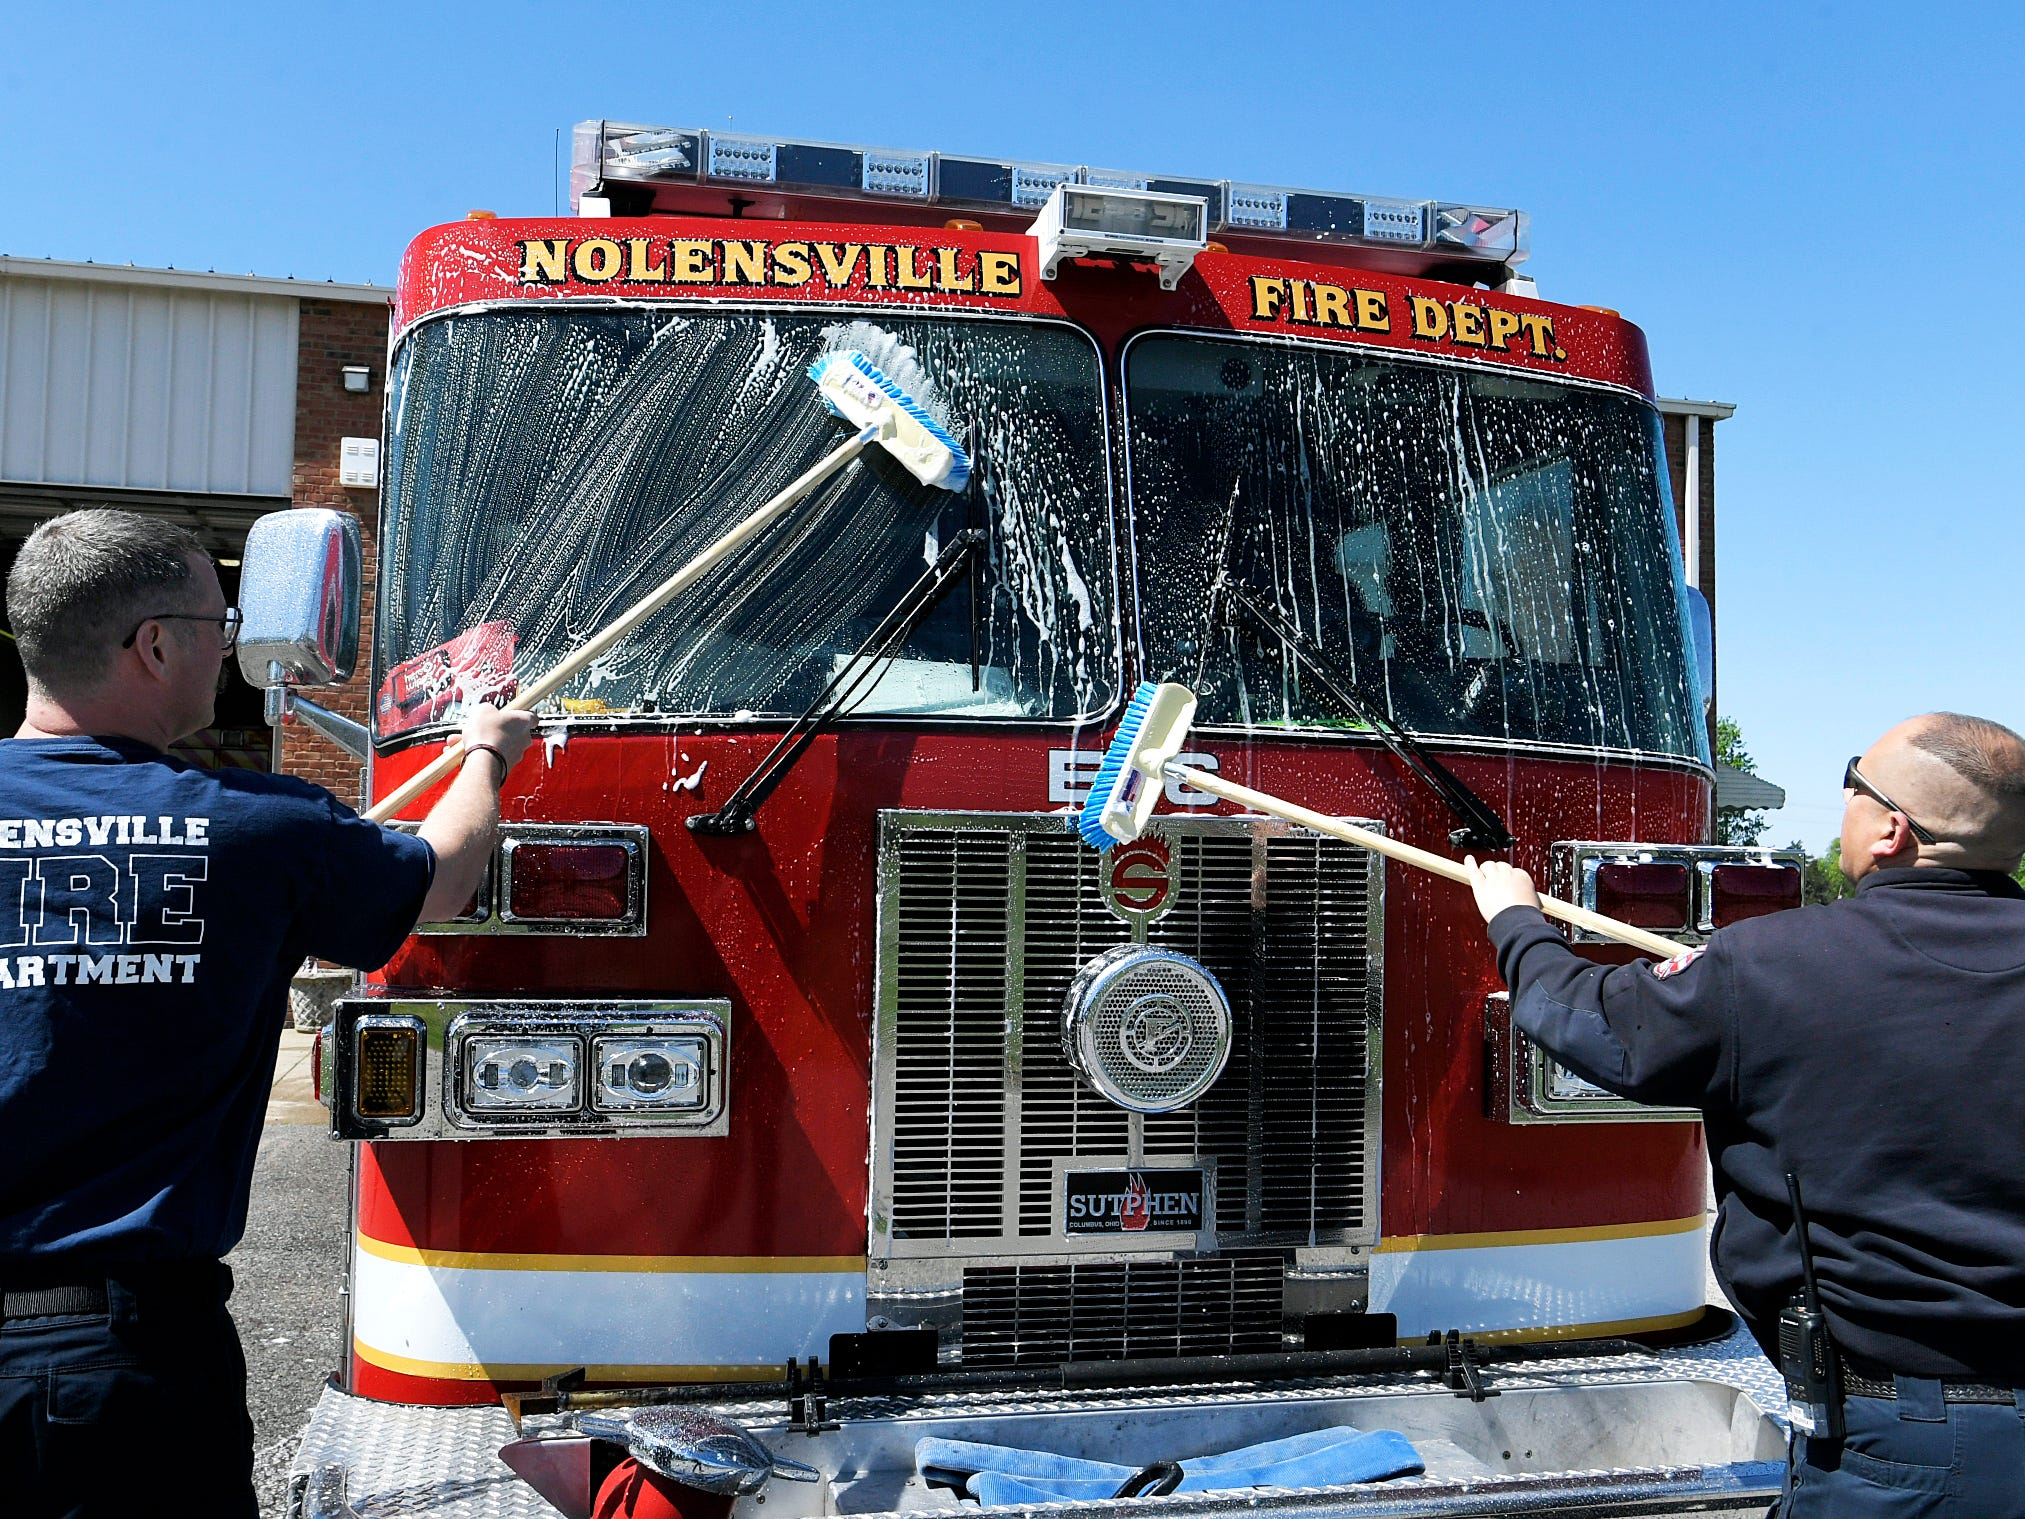 Nolensville Volunteer Fire Department members Daron Standifird, left, and Lt. Troy Murray wash the department's firetruck between calls on Monday, April 15, 2019.